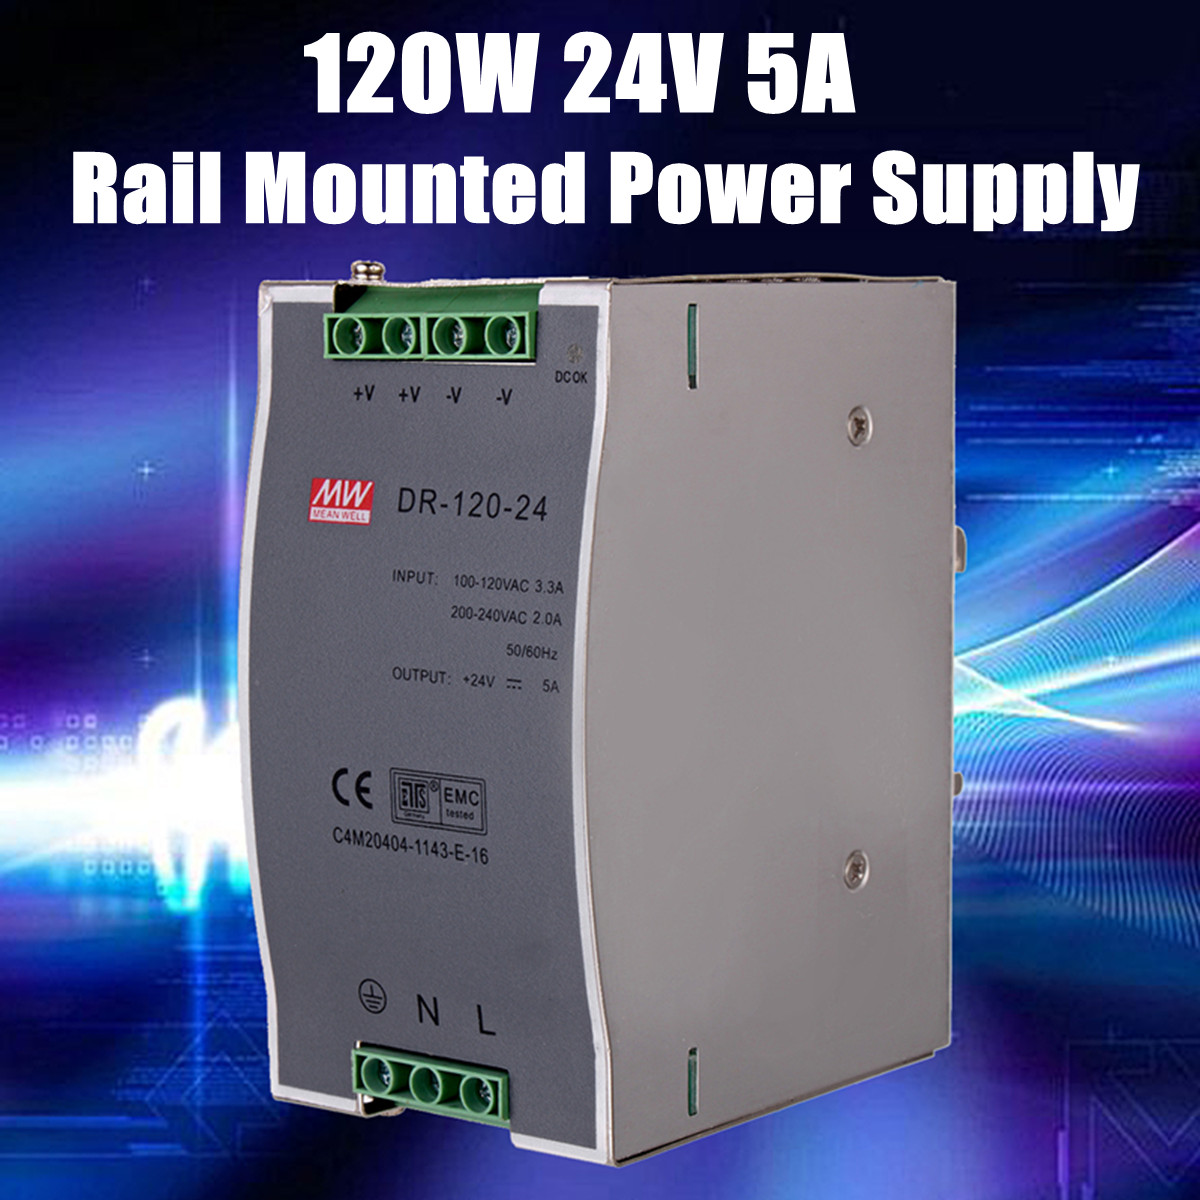 120W Din Rail Mounted 24VDC 5A Output Power Industrial Metal Switching Power Supply Supplier Steady Power Supply Enclosure Smps